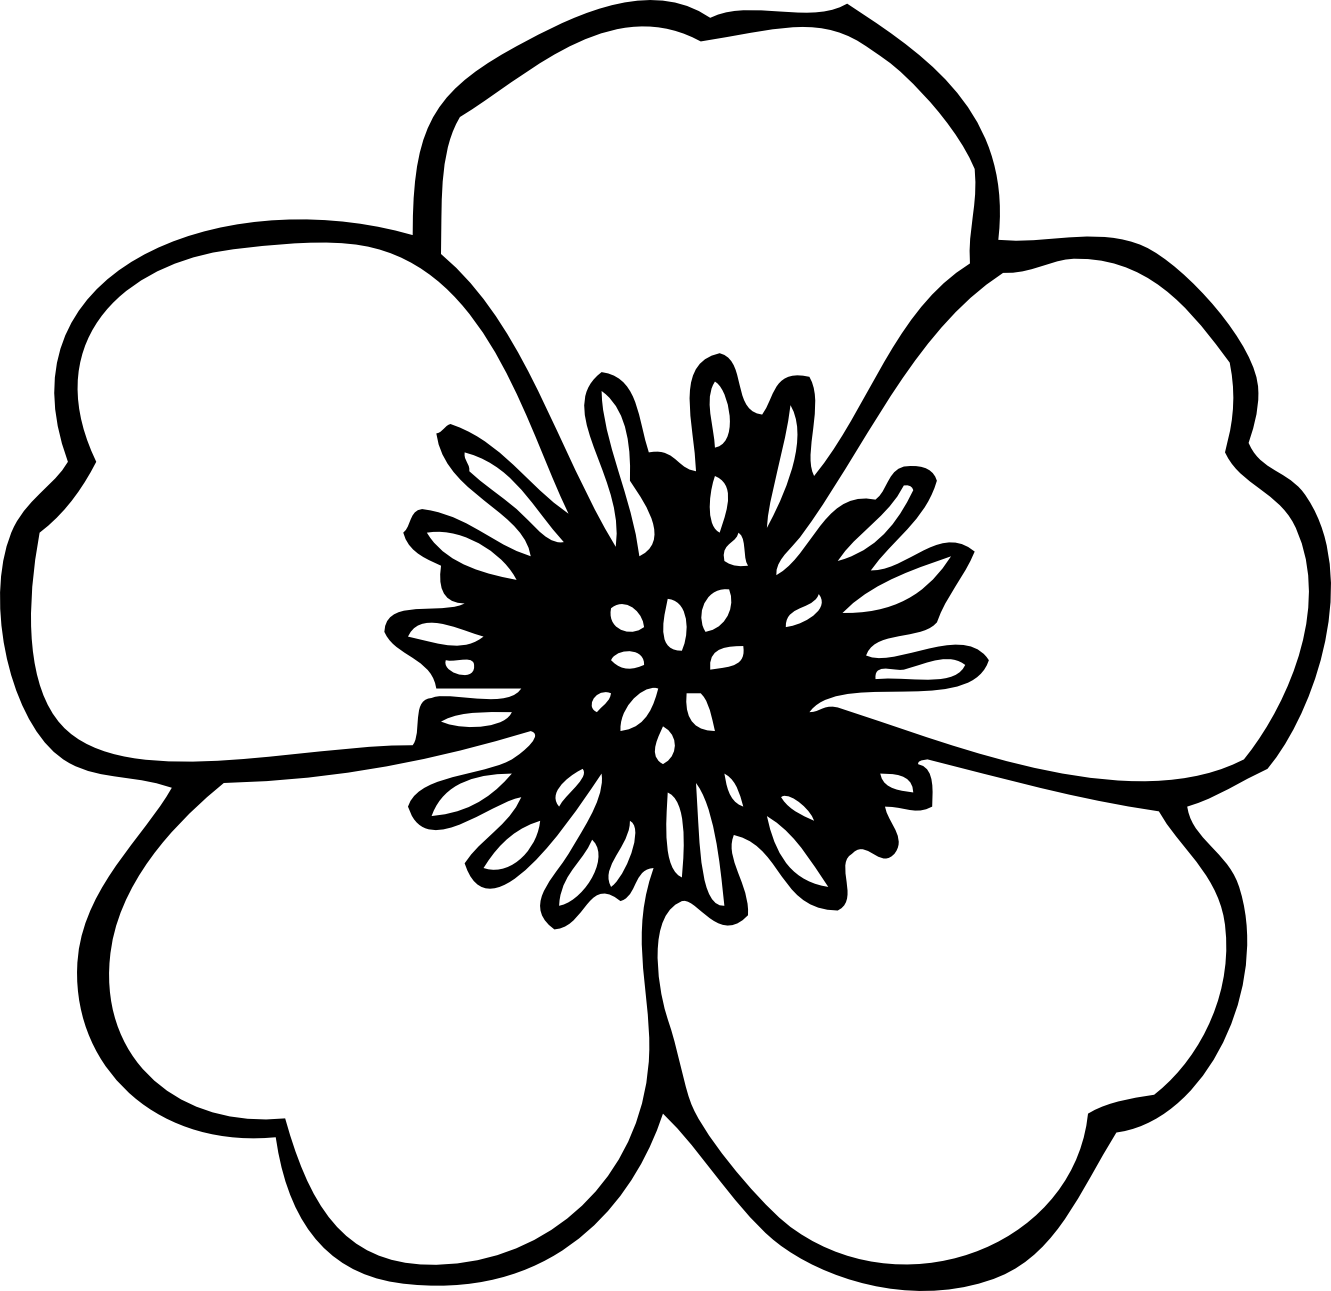 Daisies clipart flowerblack. Daisy flower black and